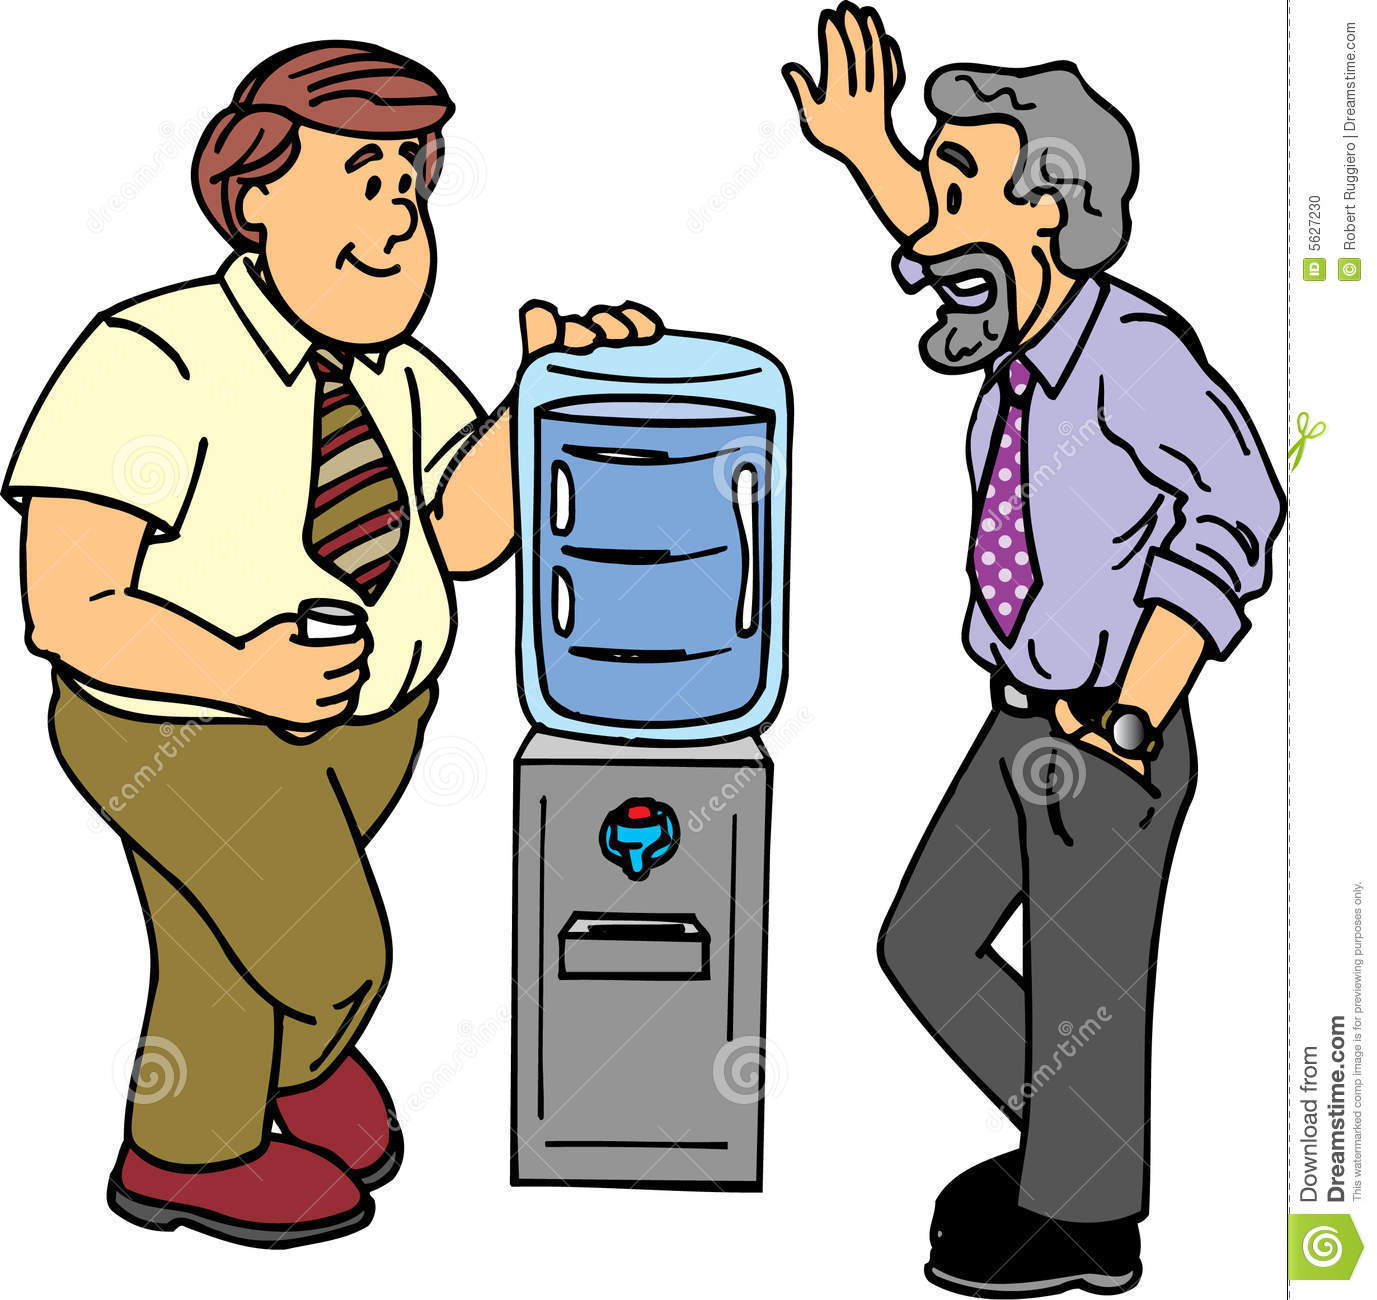 Water Cooler Chat Stock Photo - Image: 5627230